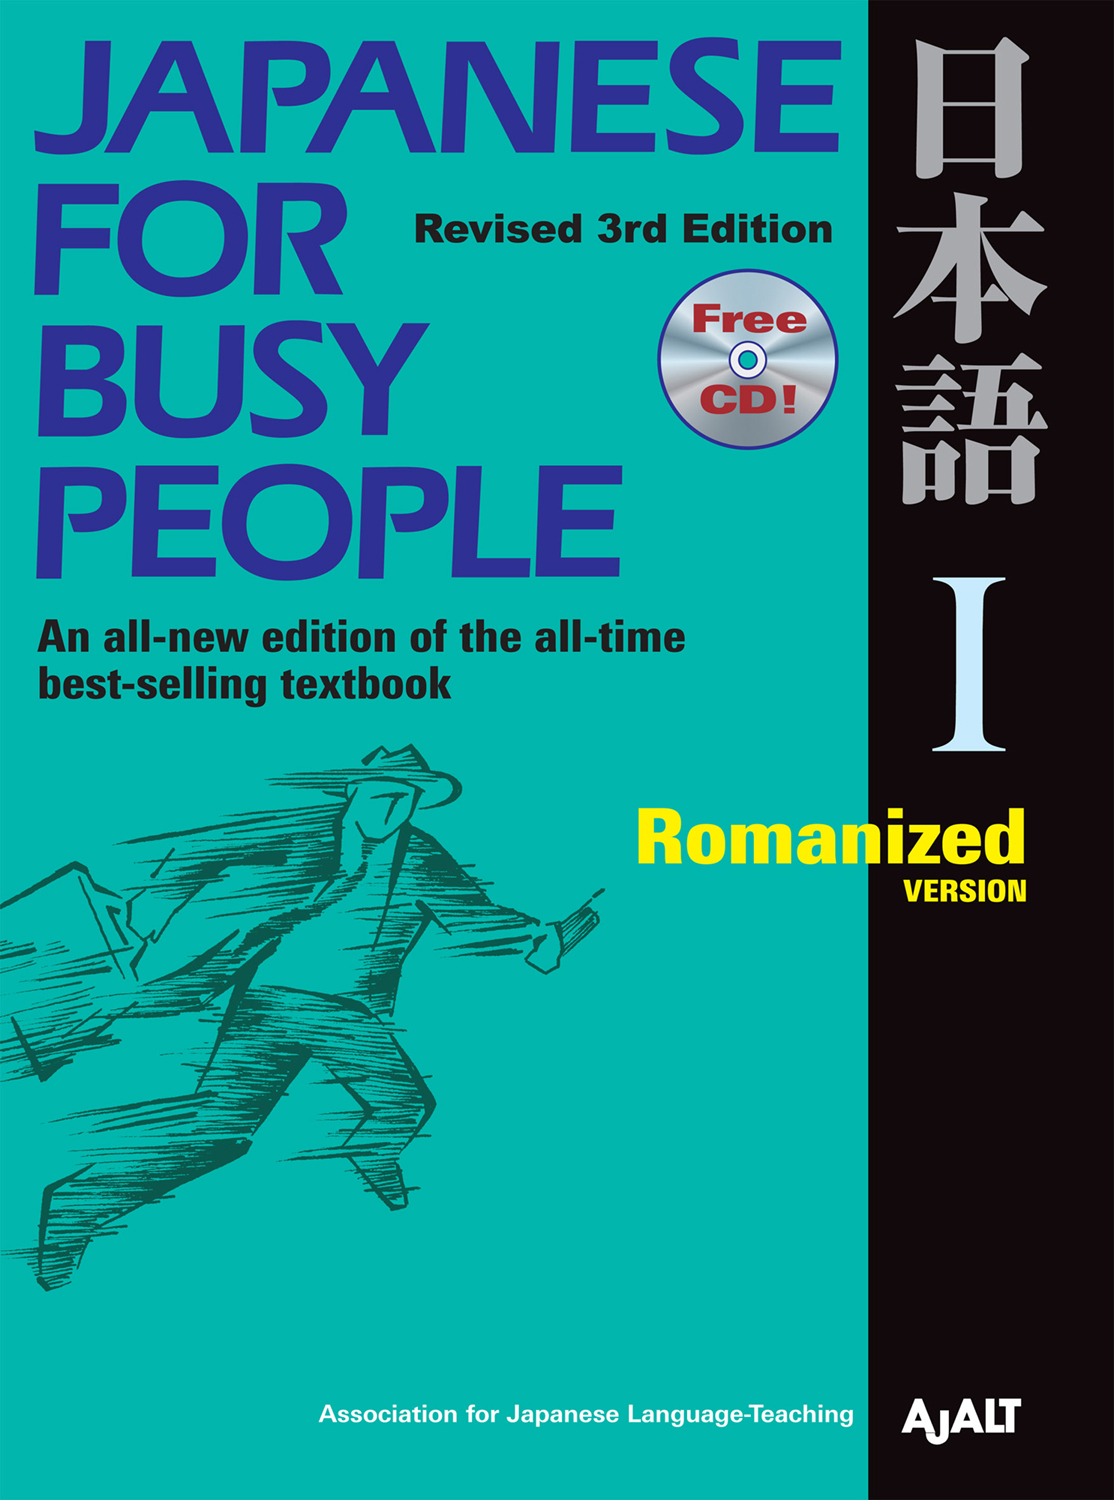 Cover of Japanese for Busy People Revised 3rd Edition I (Romanized Version): An all-new edition of the all-time best-selling textbook.